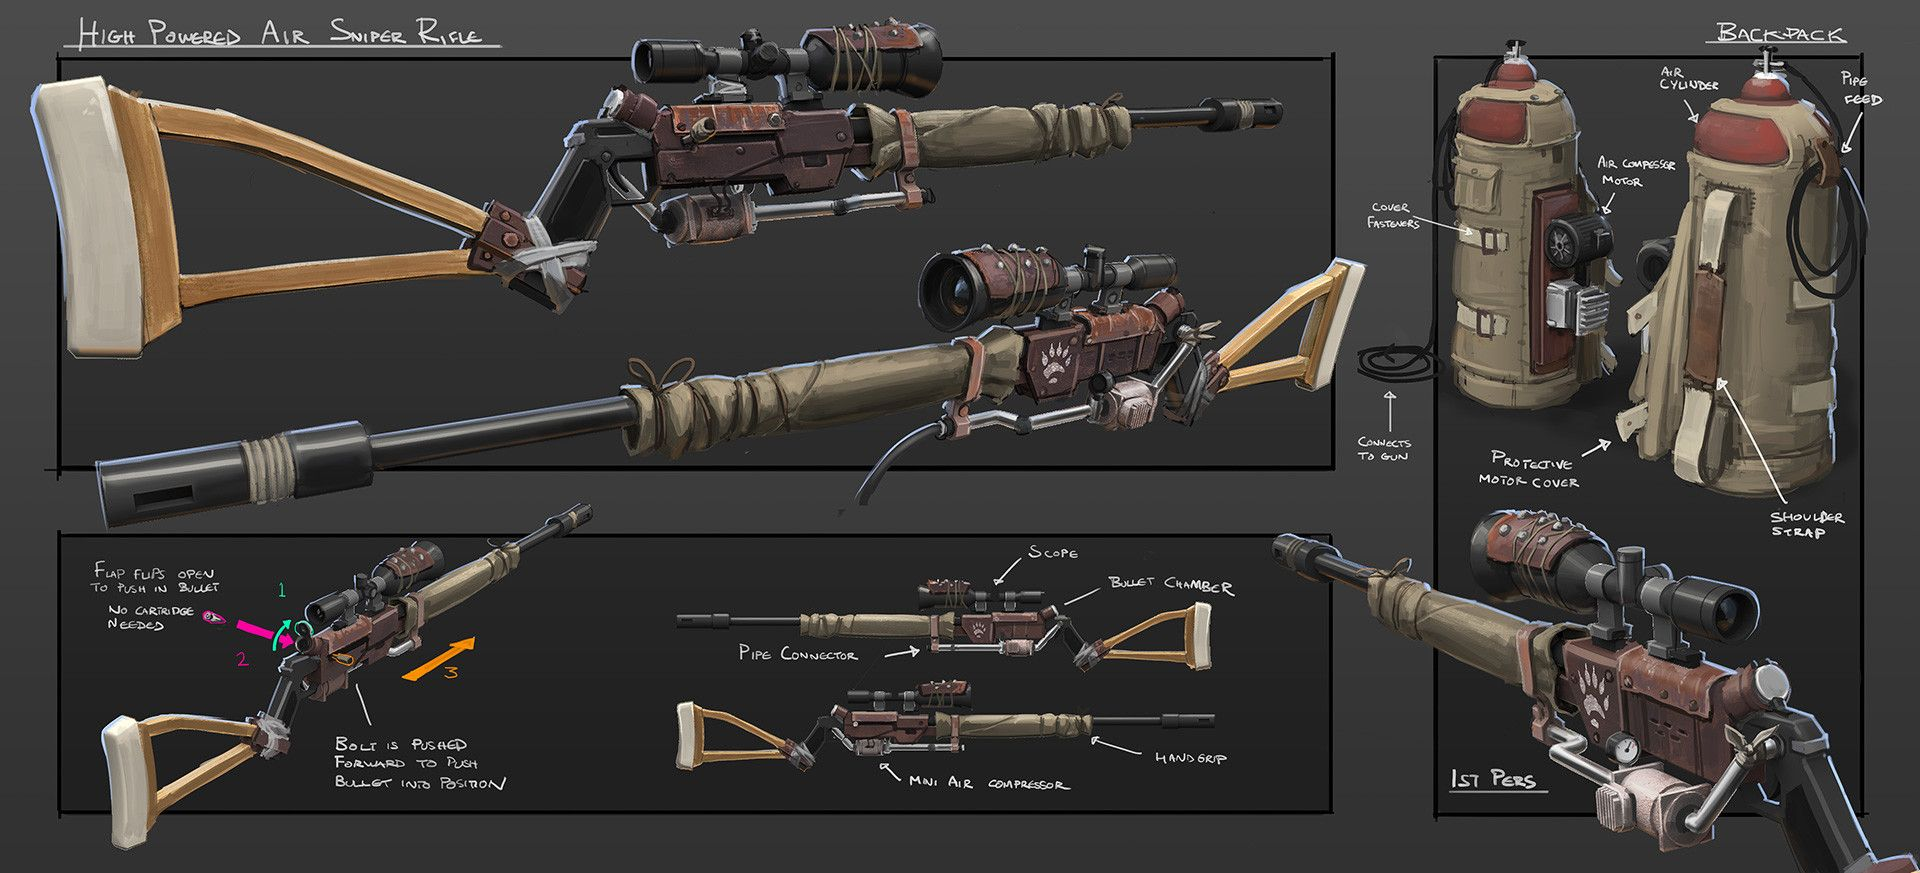 Air Powered Sniper Rifle by Dave Jones on ArtStation. Save those ...